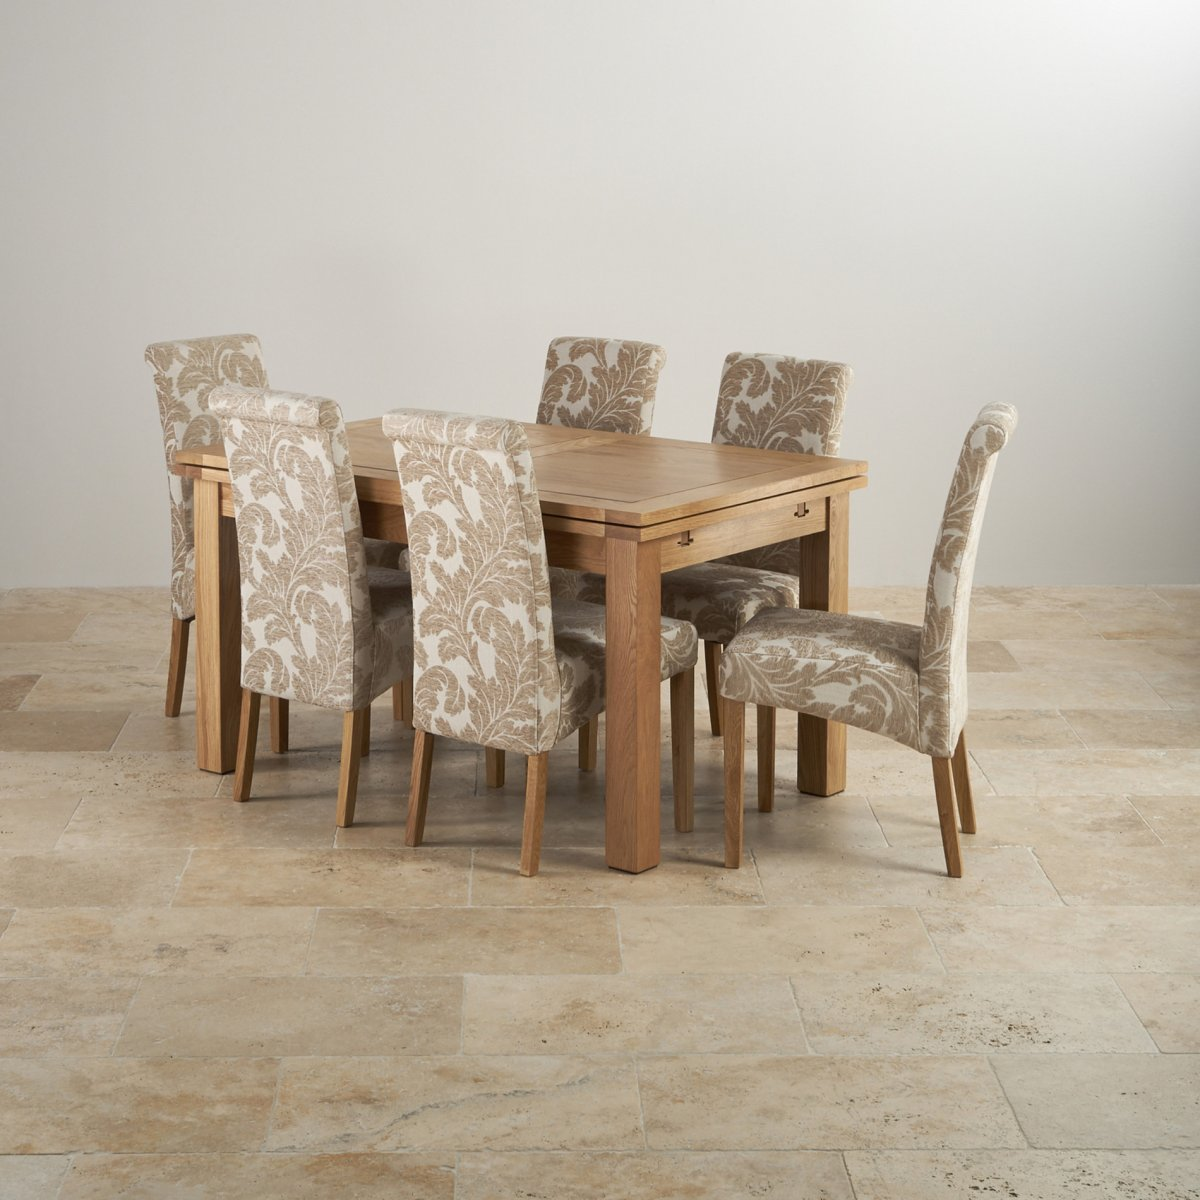 Dorset Dining Set In Natural Oak: Table + 6 Patterned Chairs